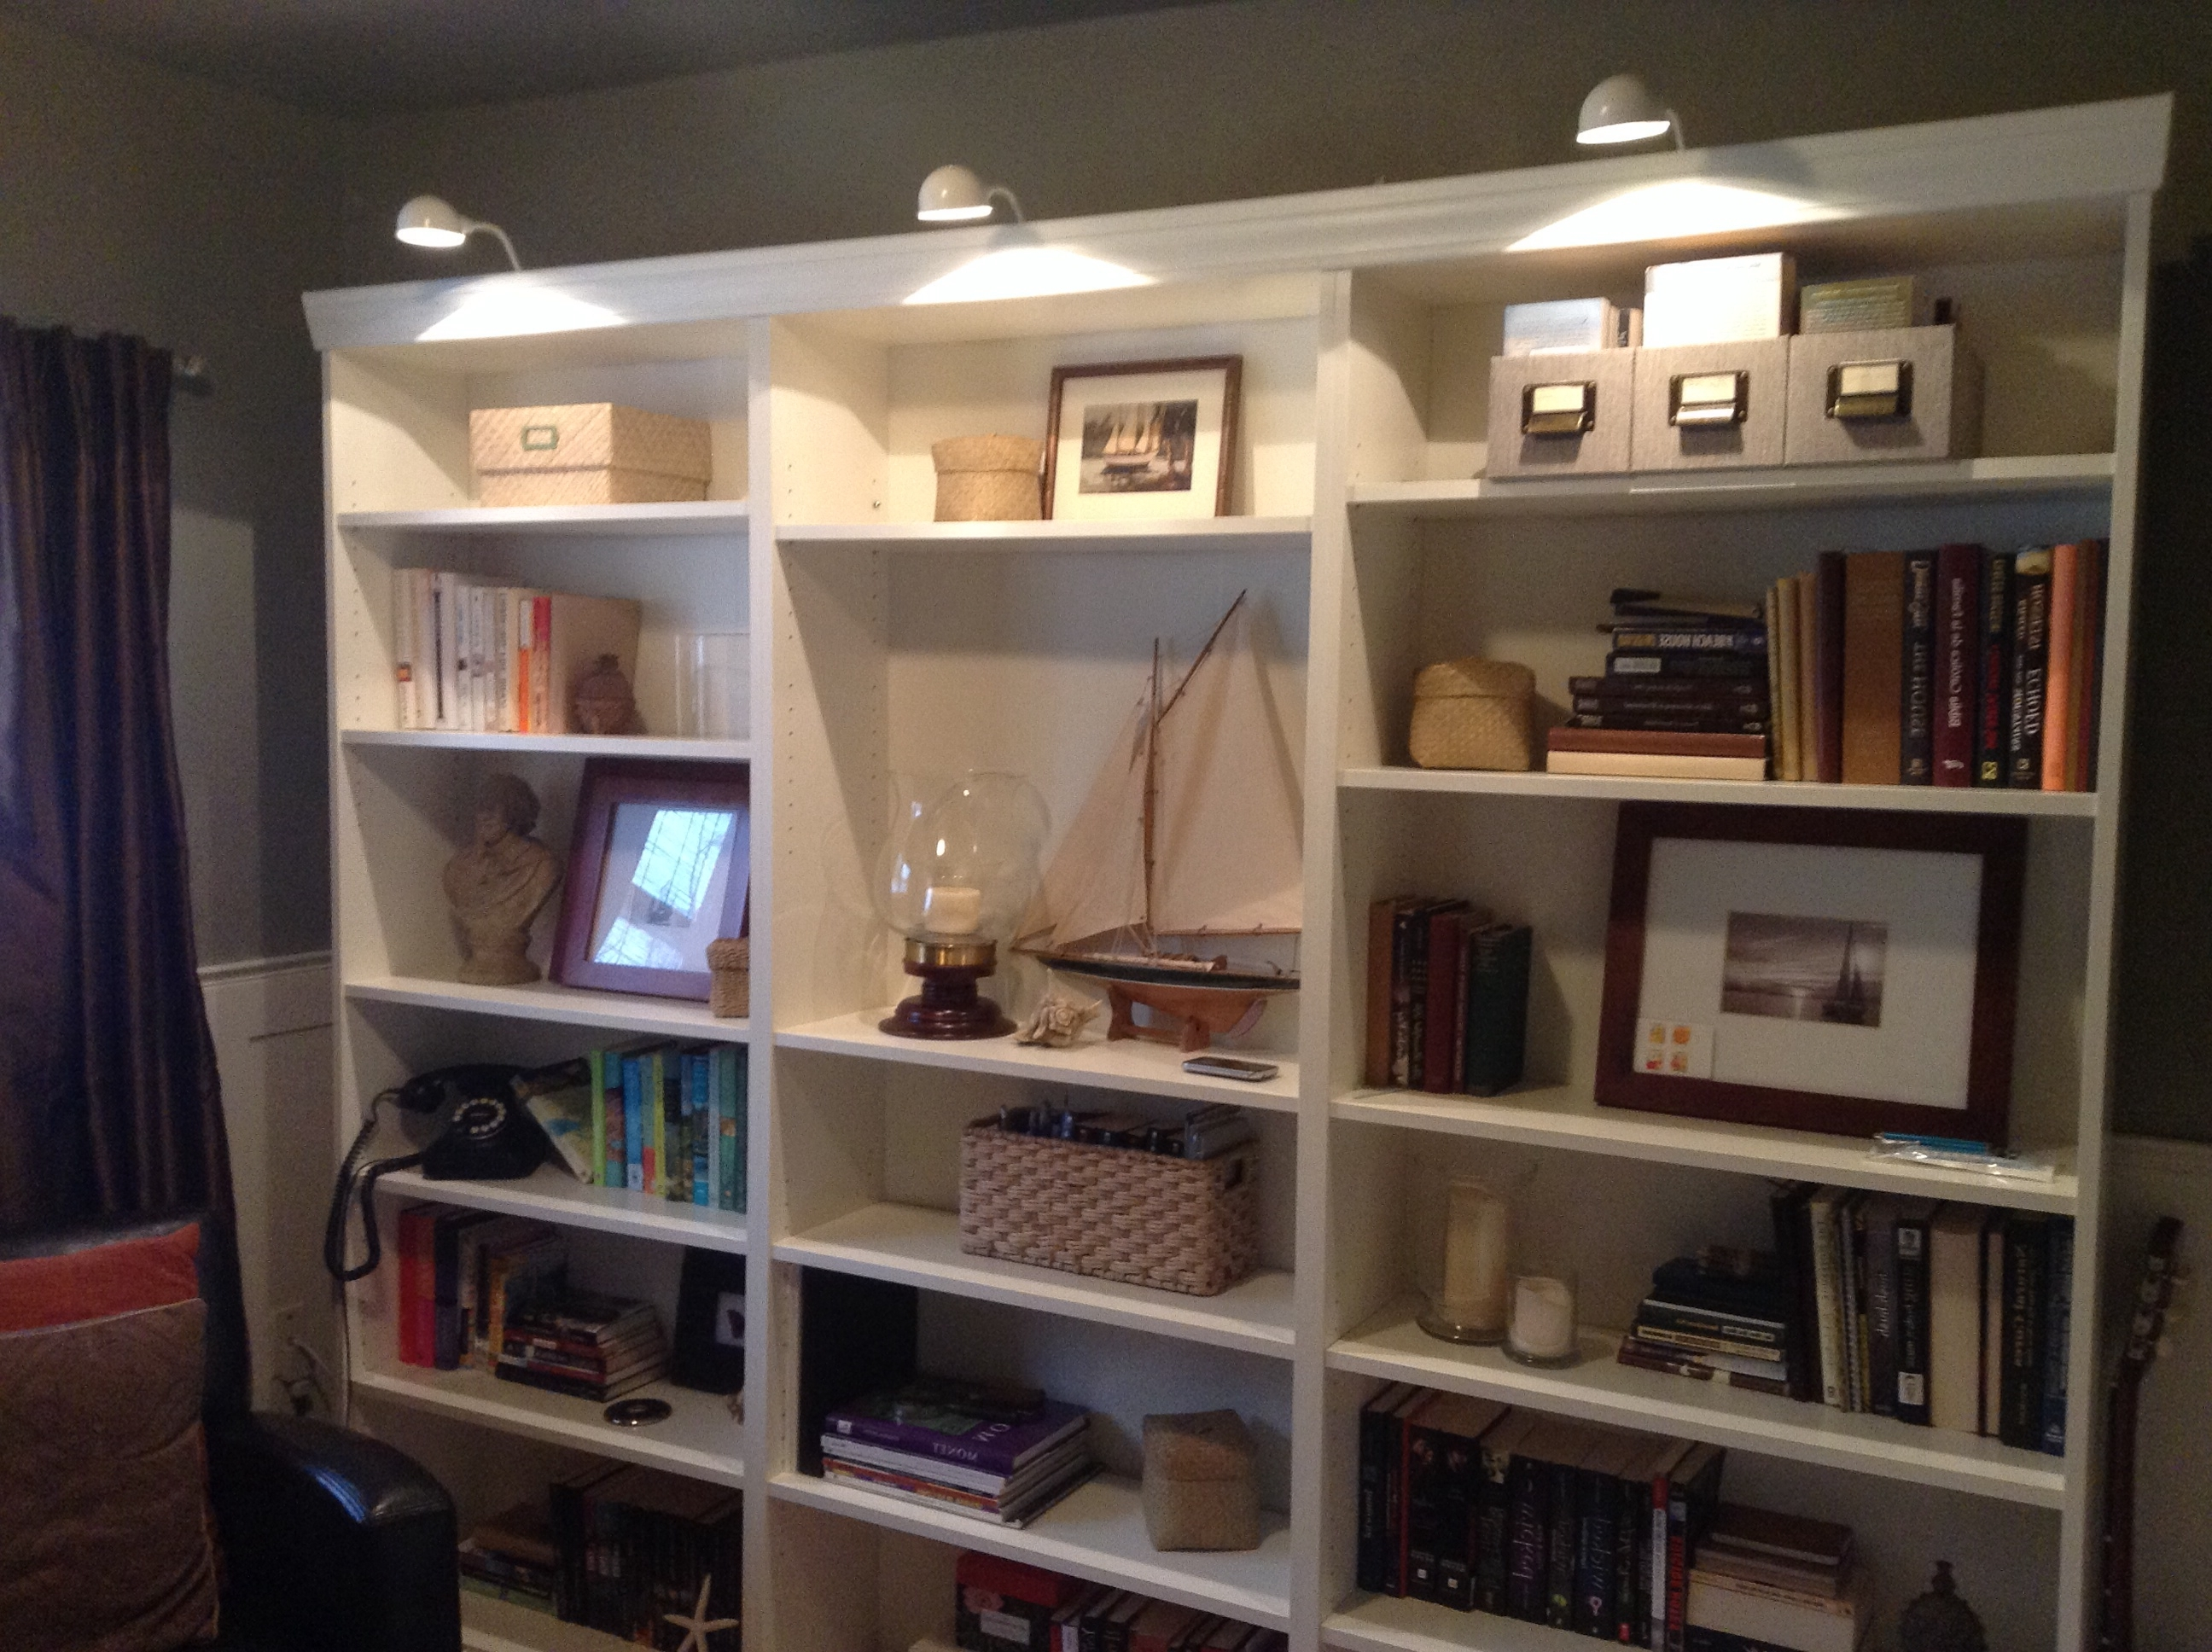 55 Book Shelf Lighting, Bookshelf Lighting Houzz Throughout Well Known Bookcases Lighting (View 2 of 15)